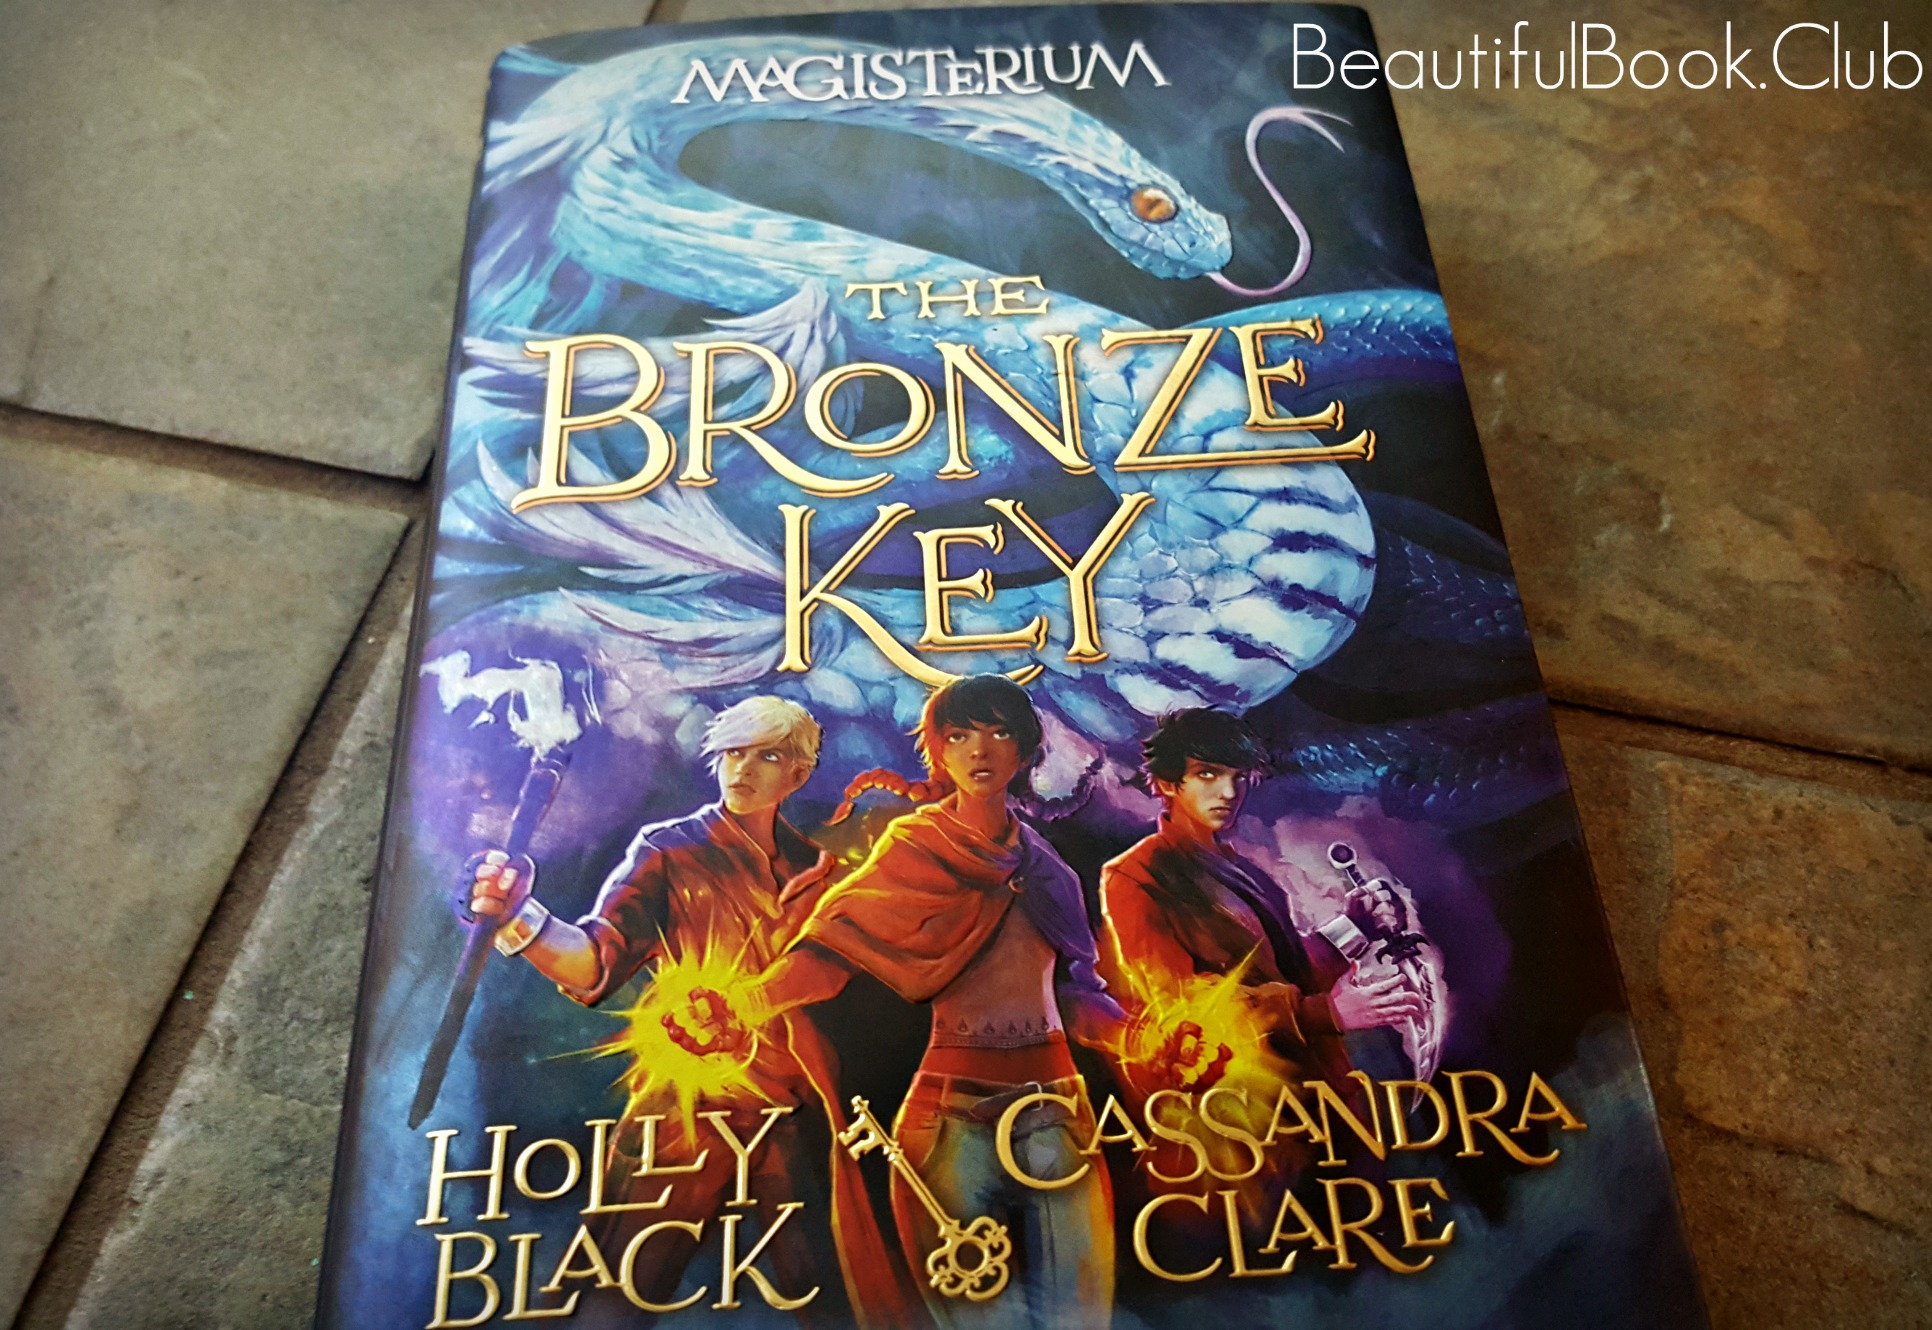 Kid View The Bronze Key By Holly Black Cassanra Clare Magisterium Series Book 3